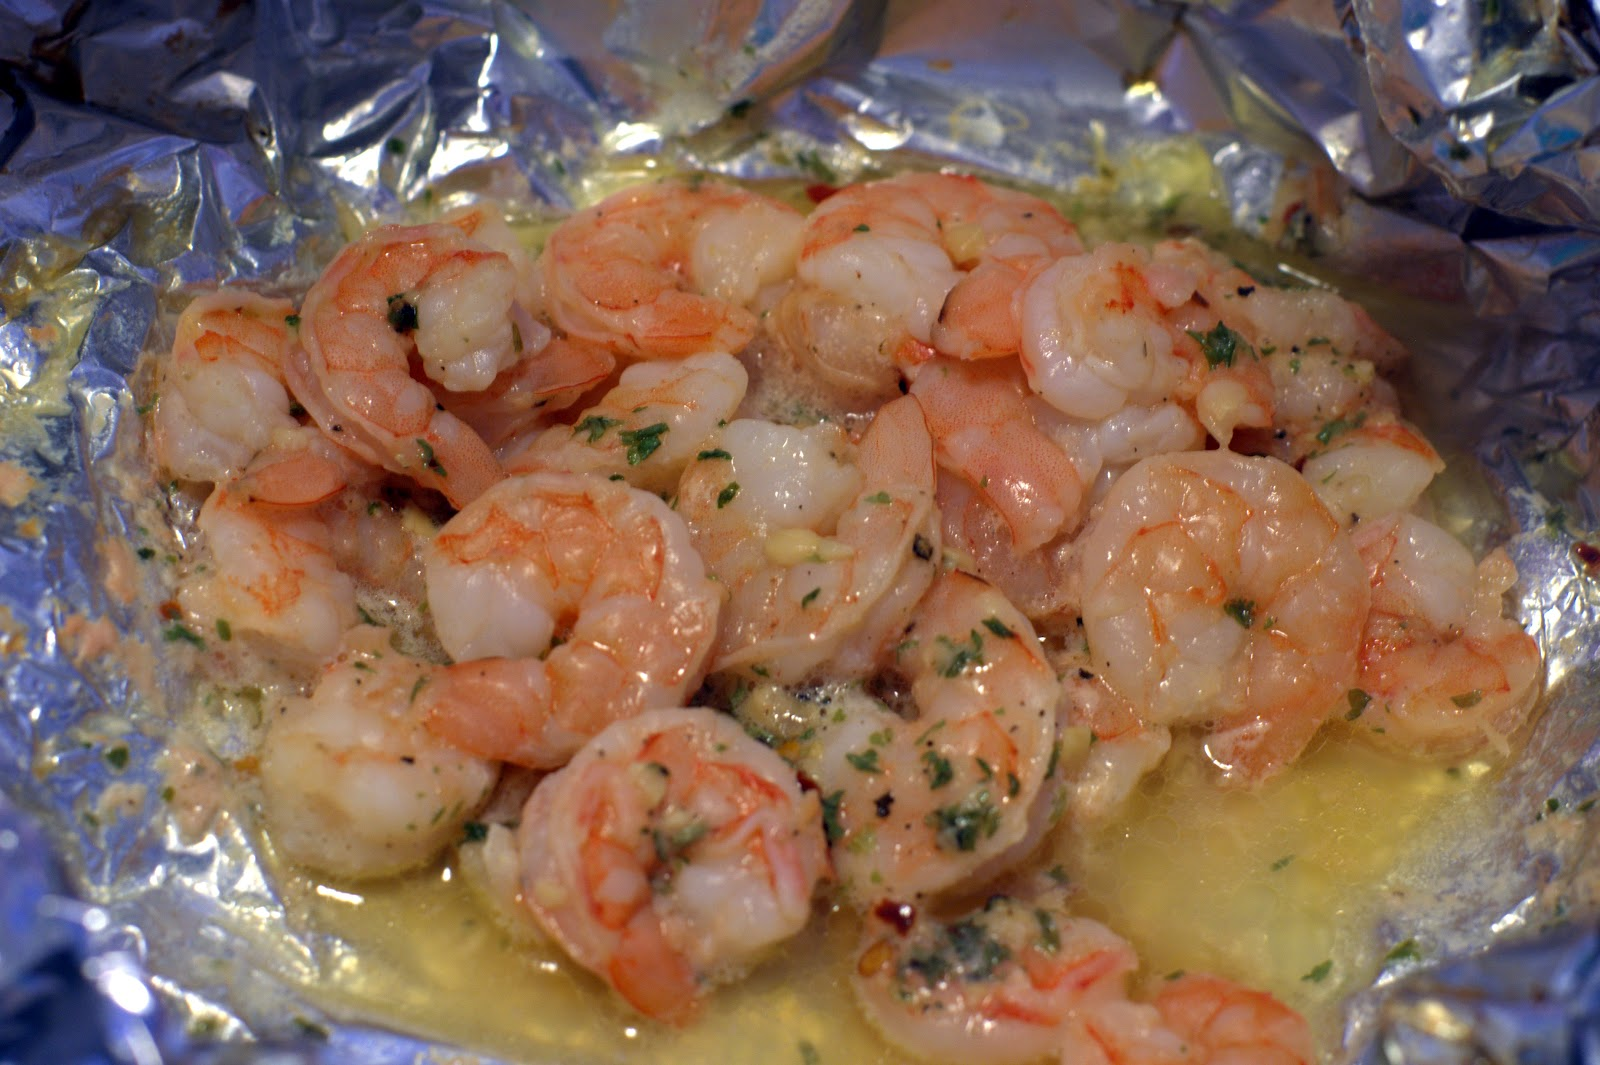 woman shrimp pasta in a foil package the woman shrimp pasta in a foil ...